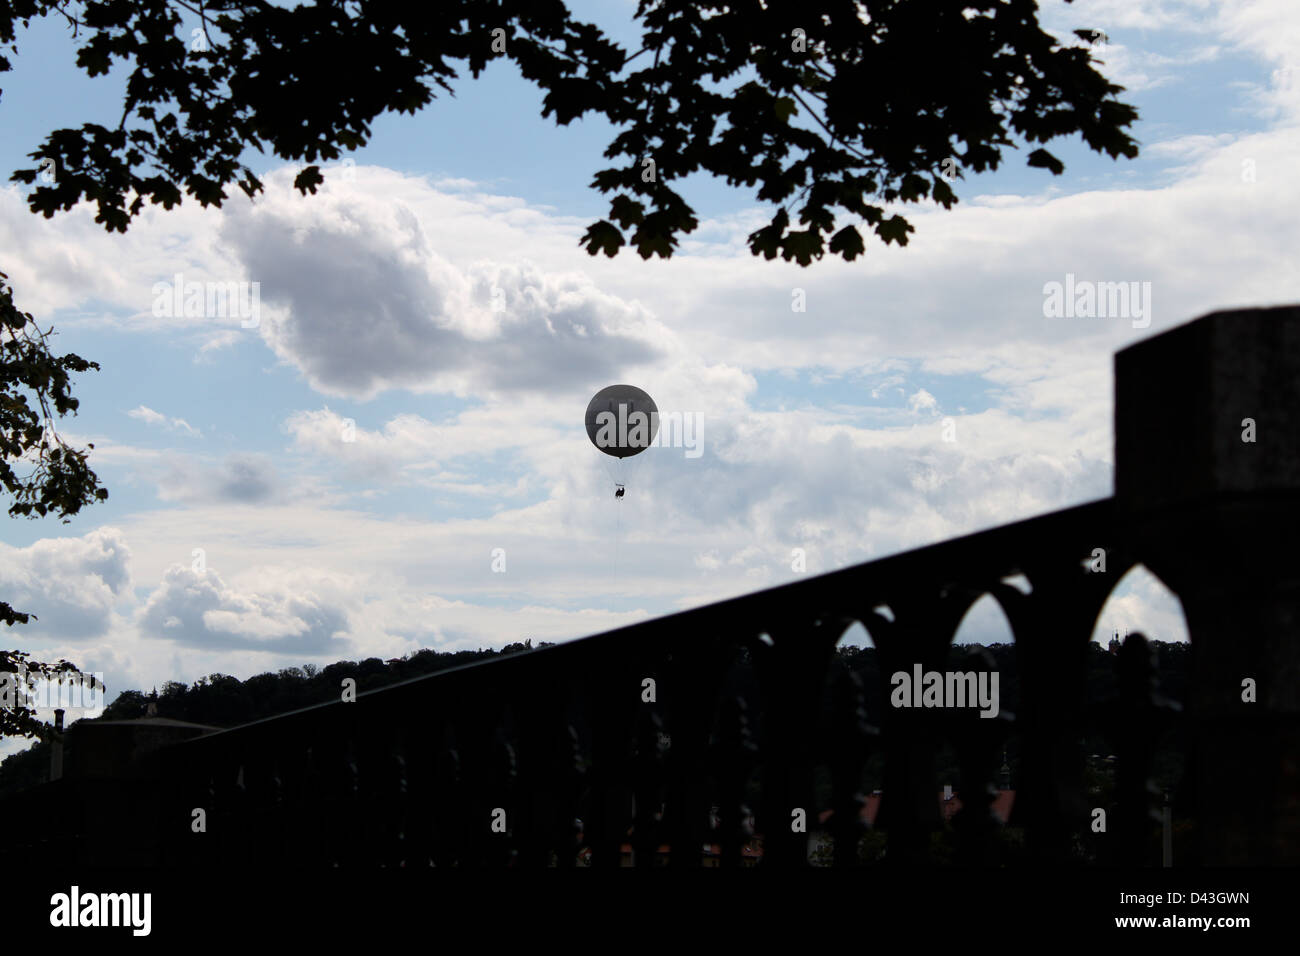 Hot Air Balloon Silhouete - Stock Image